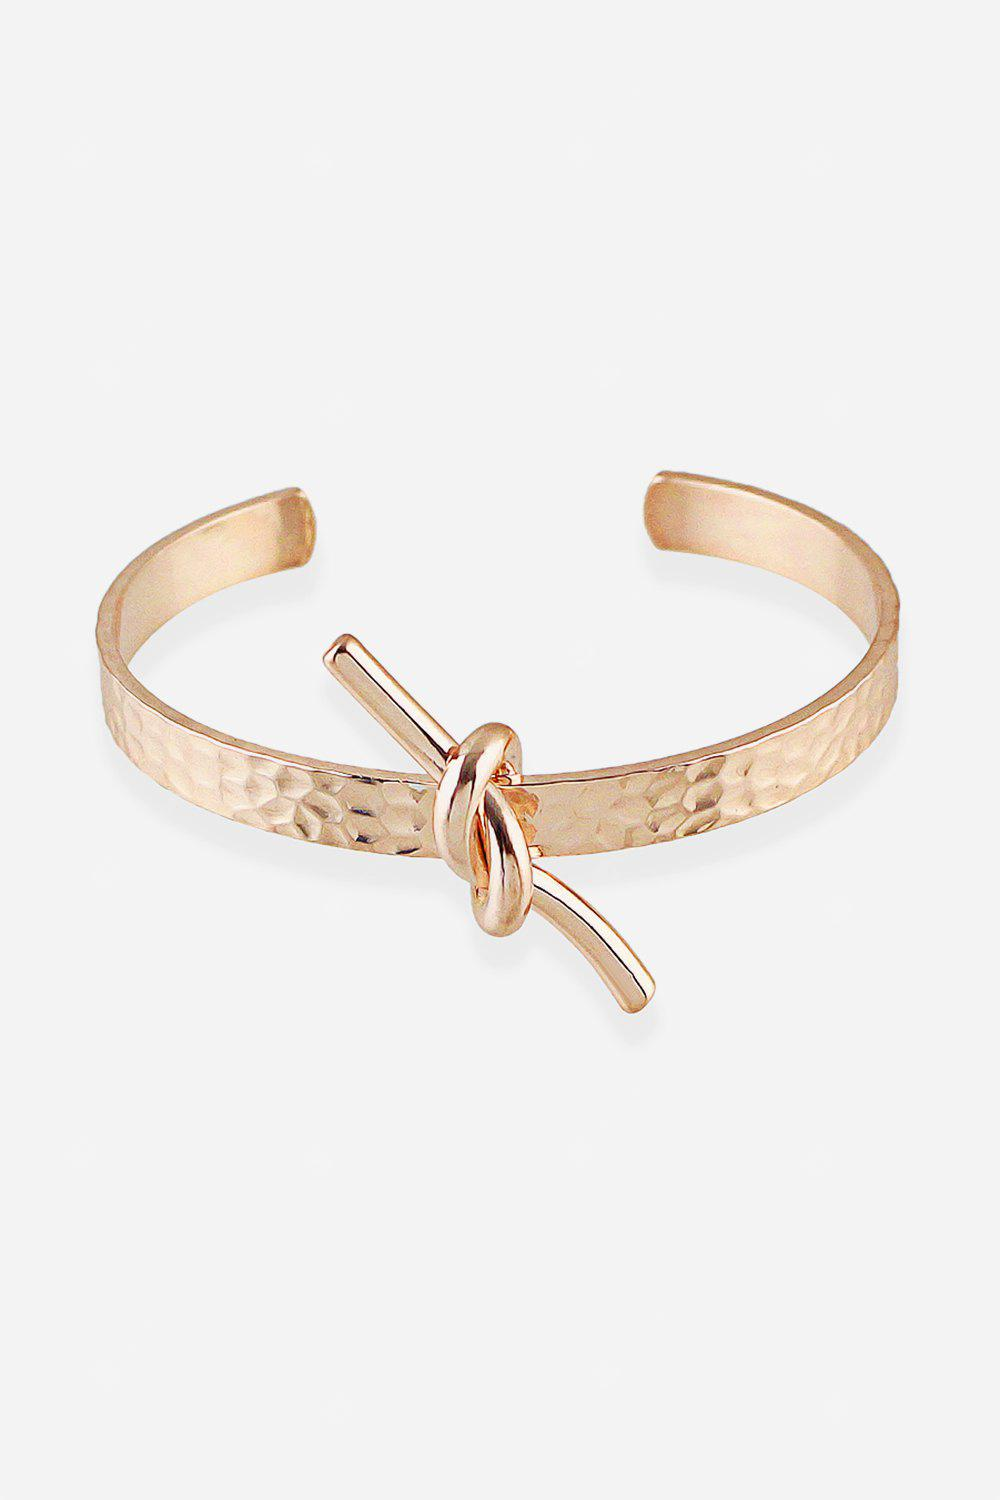 Korean Metal Thin Striped Bracelet